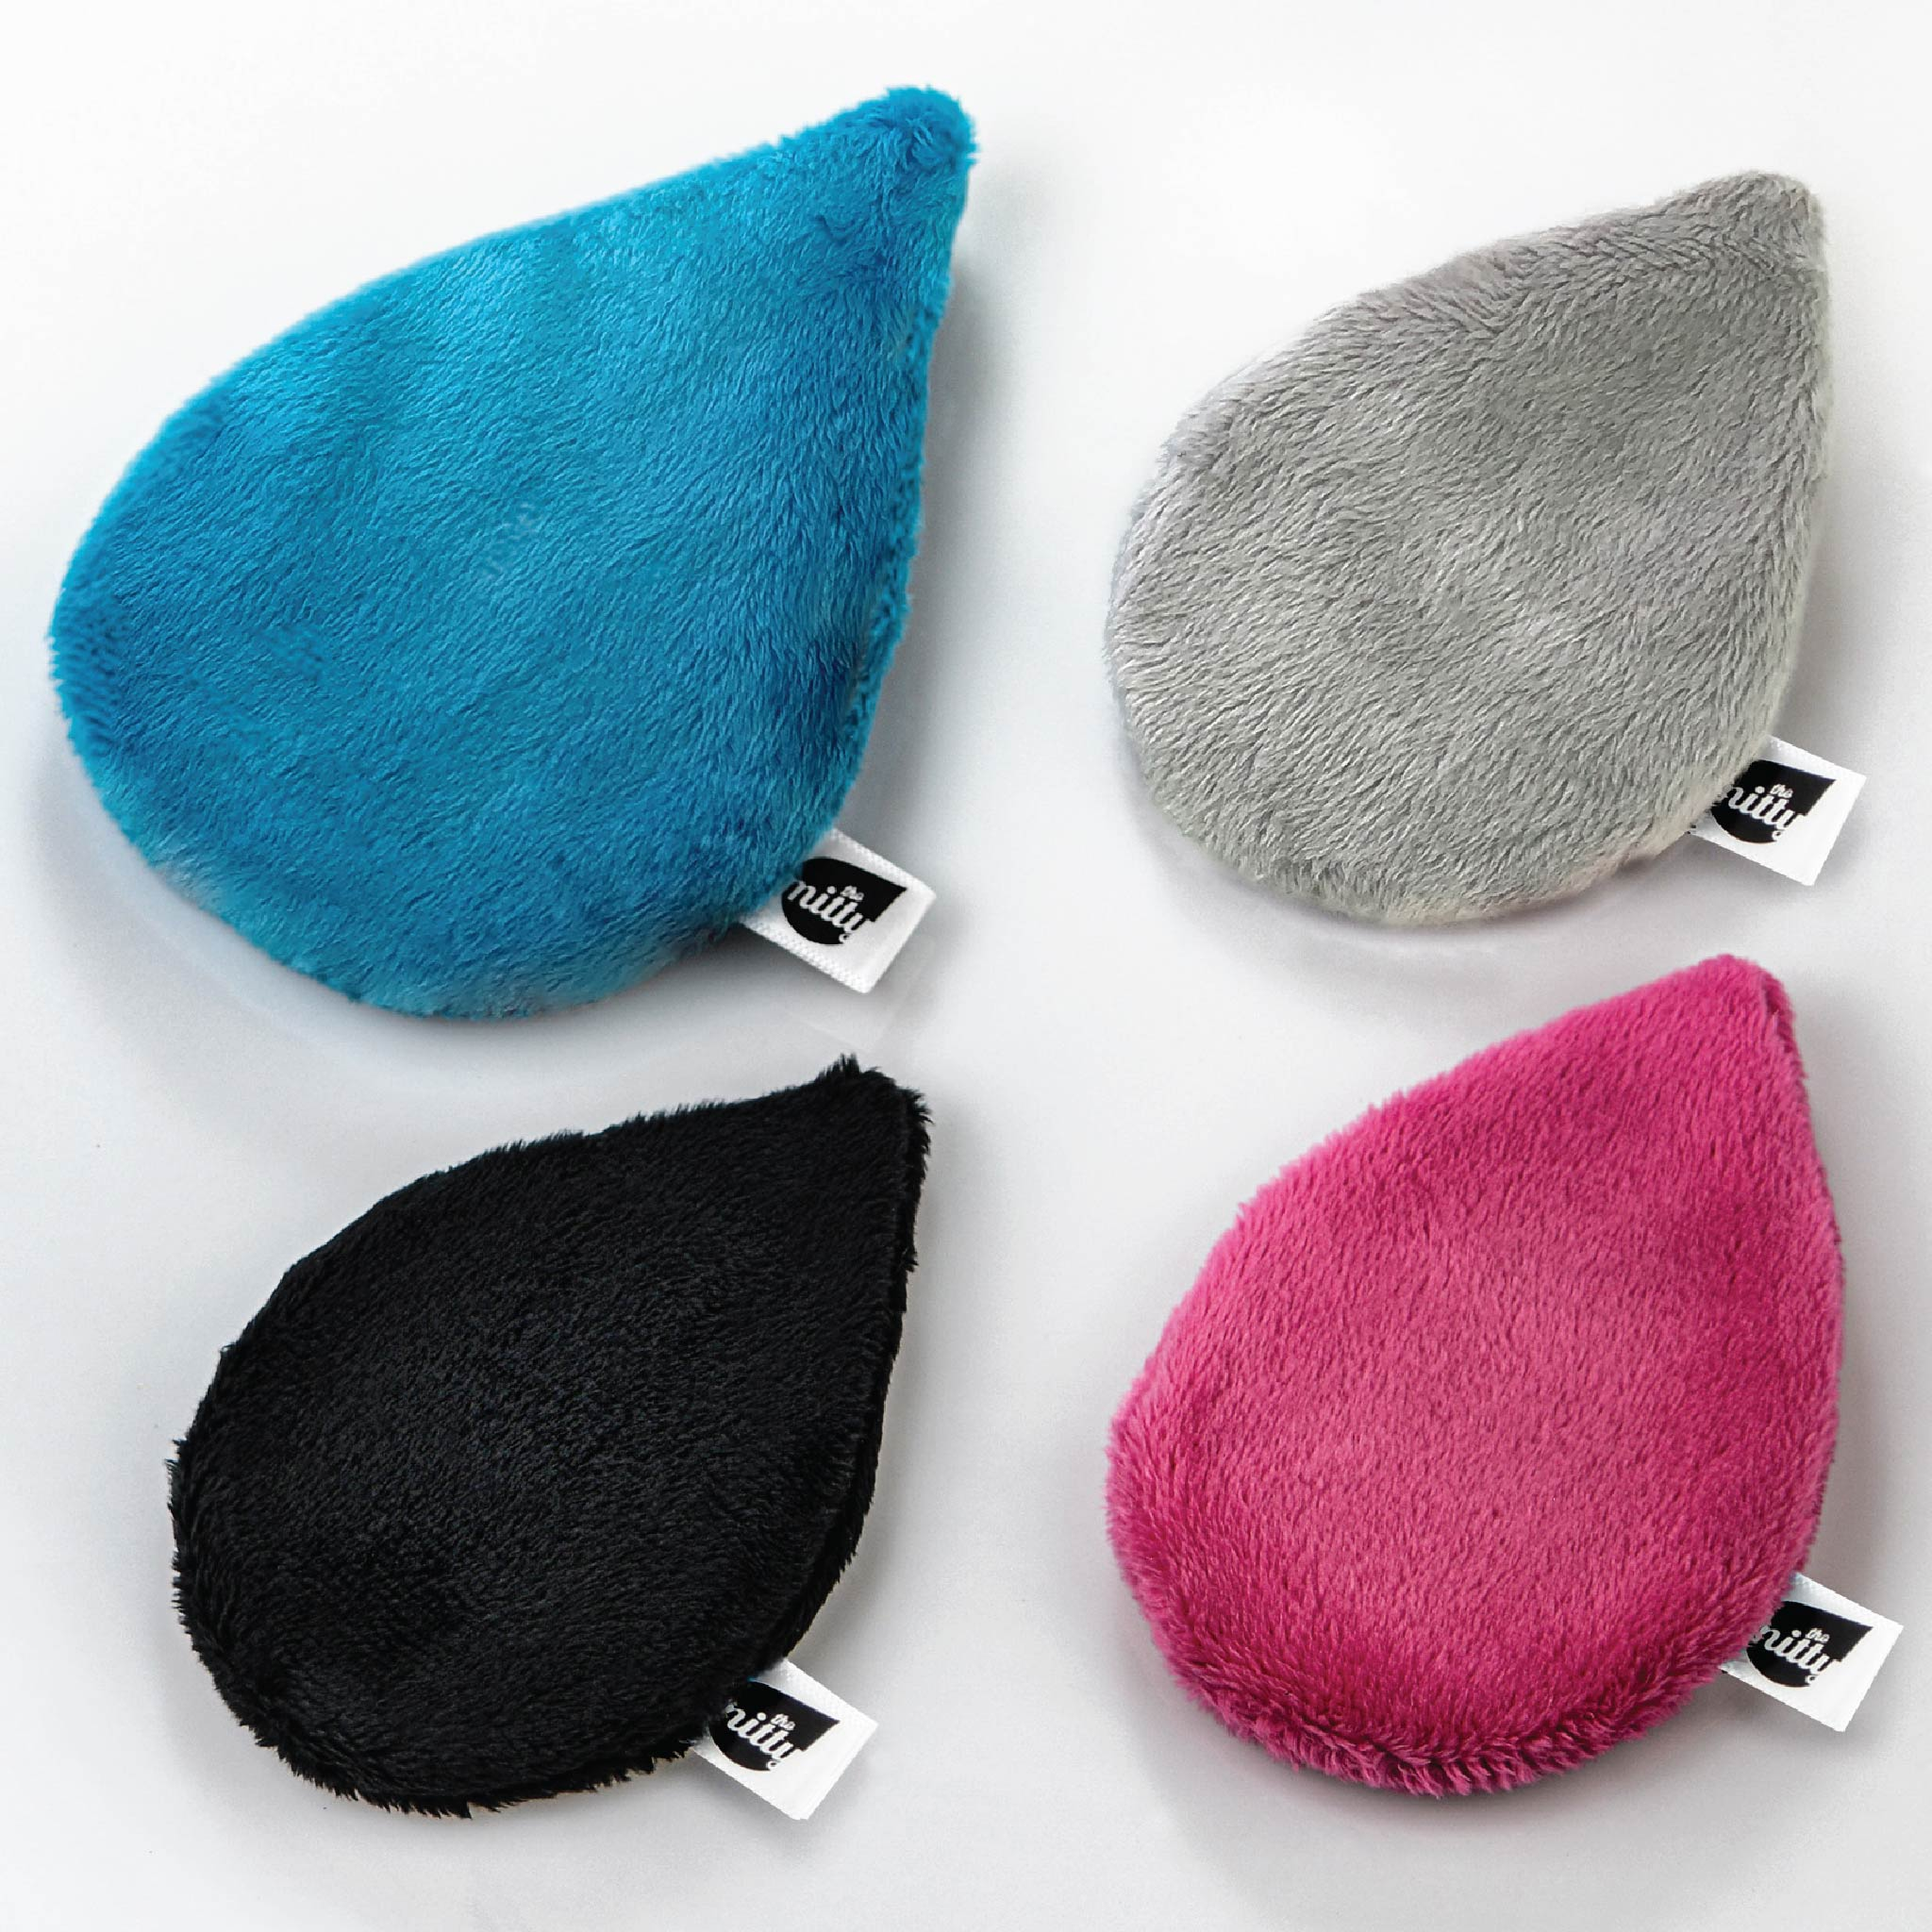 The Mitty 4-Piece Set of Amazingly Effective Reusable Facial Cloths